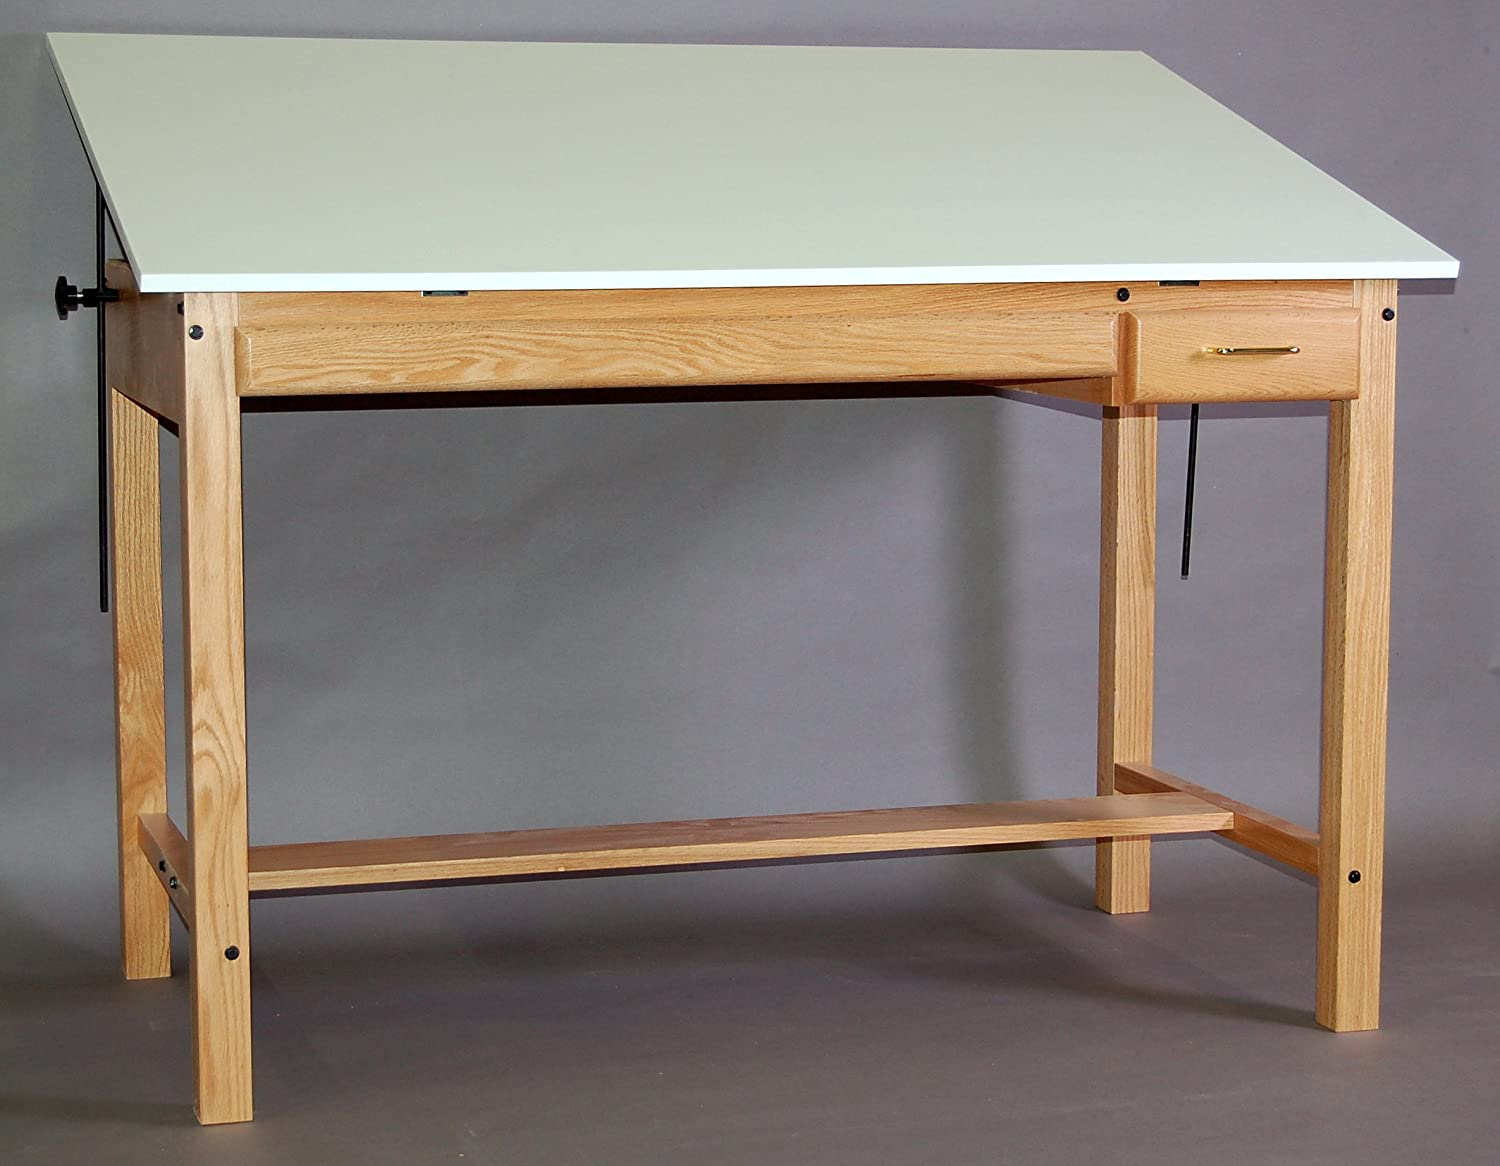 37.5 X 48 Professional Series Table with Tool & Plan Drawer (Natural Oak)